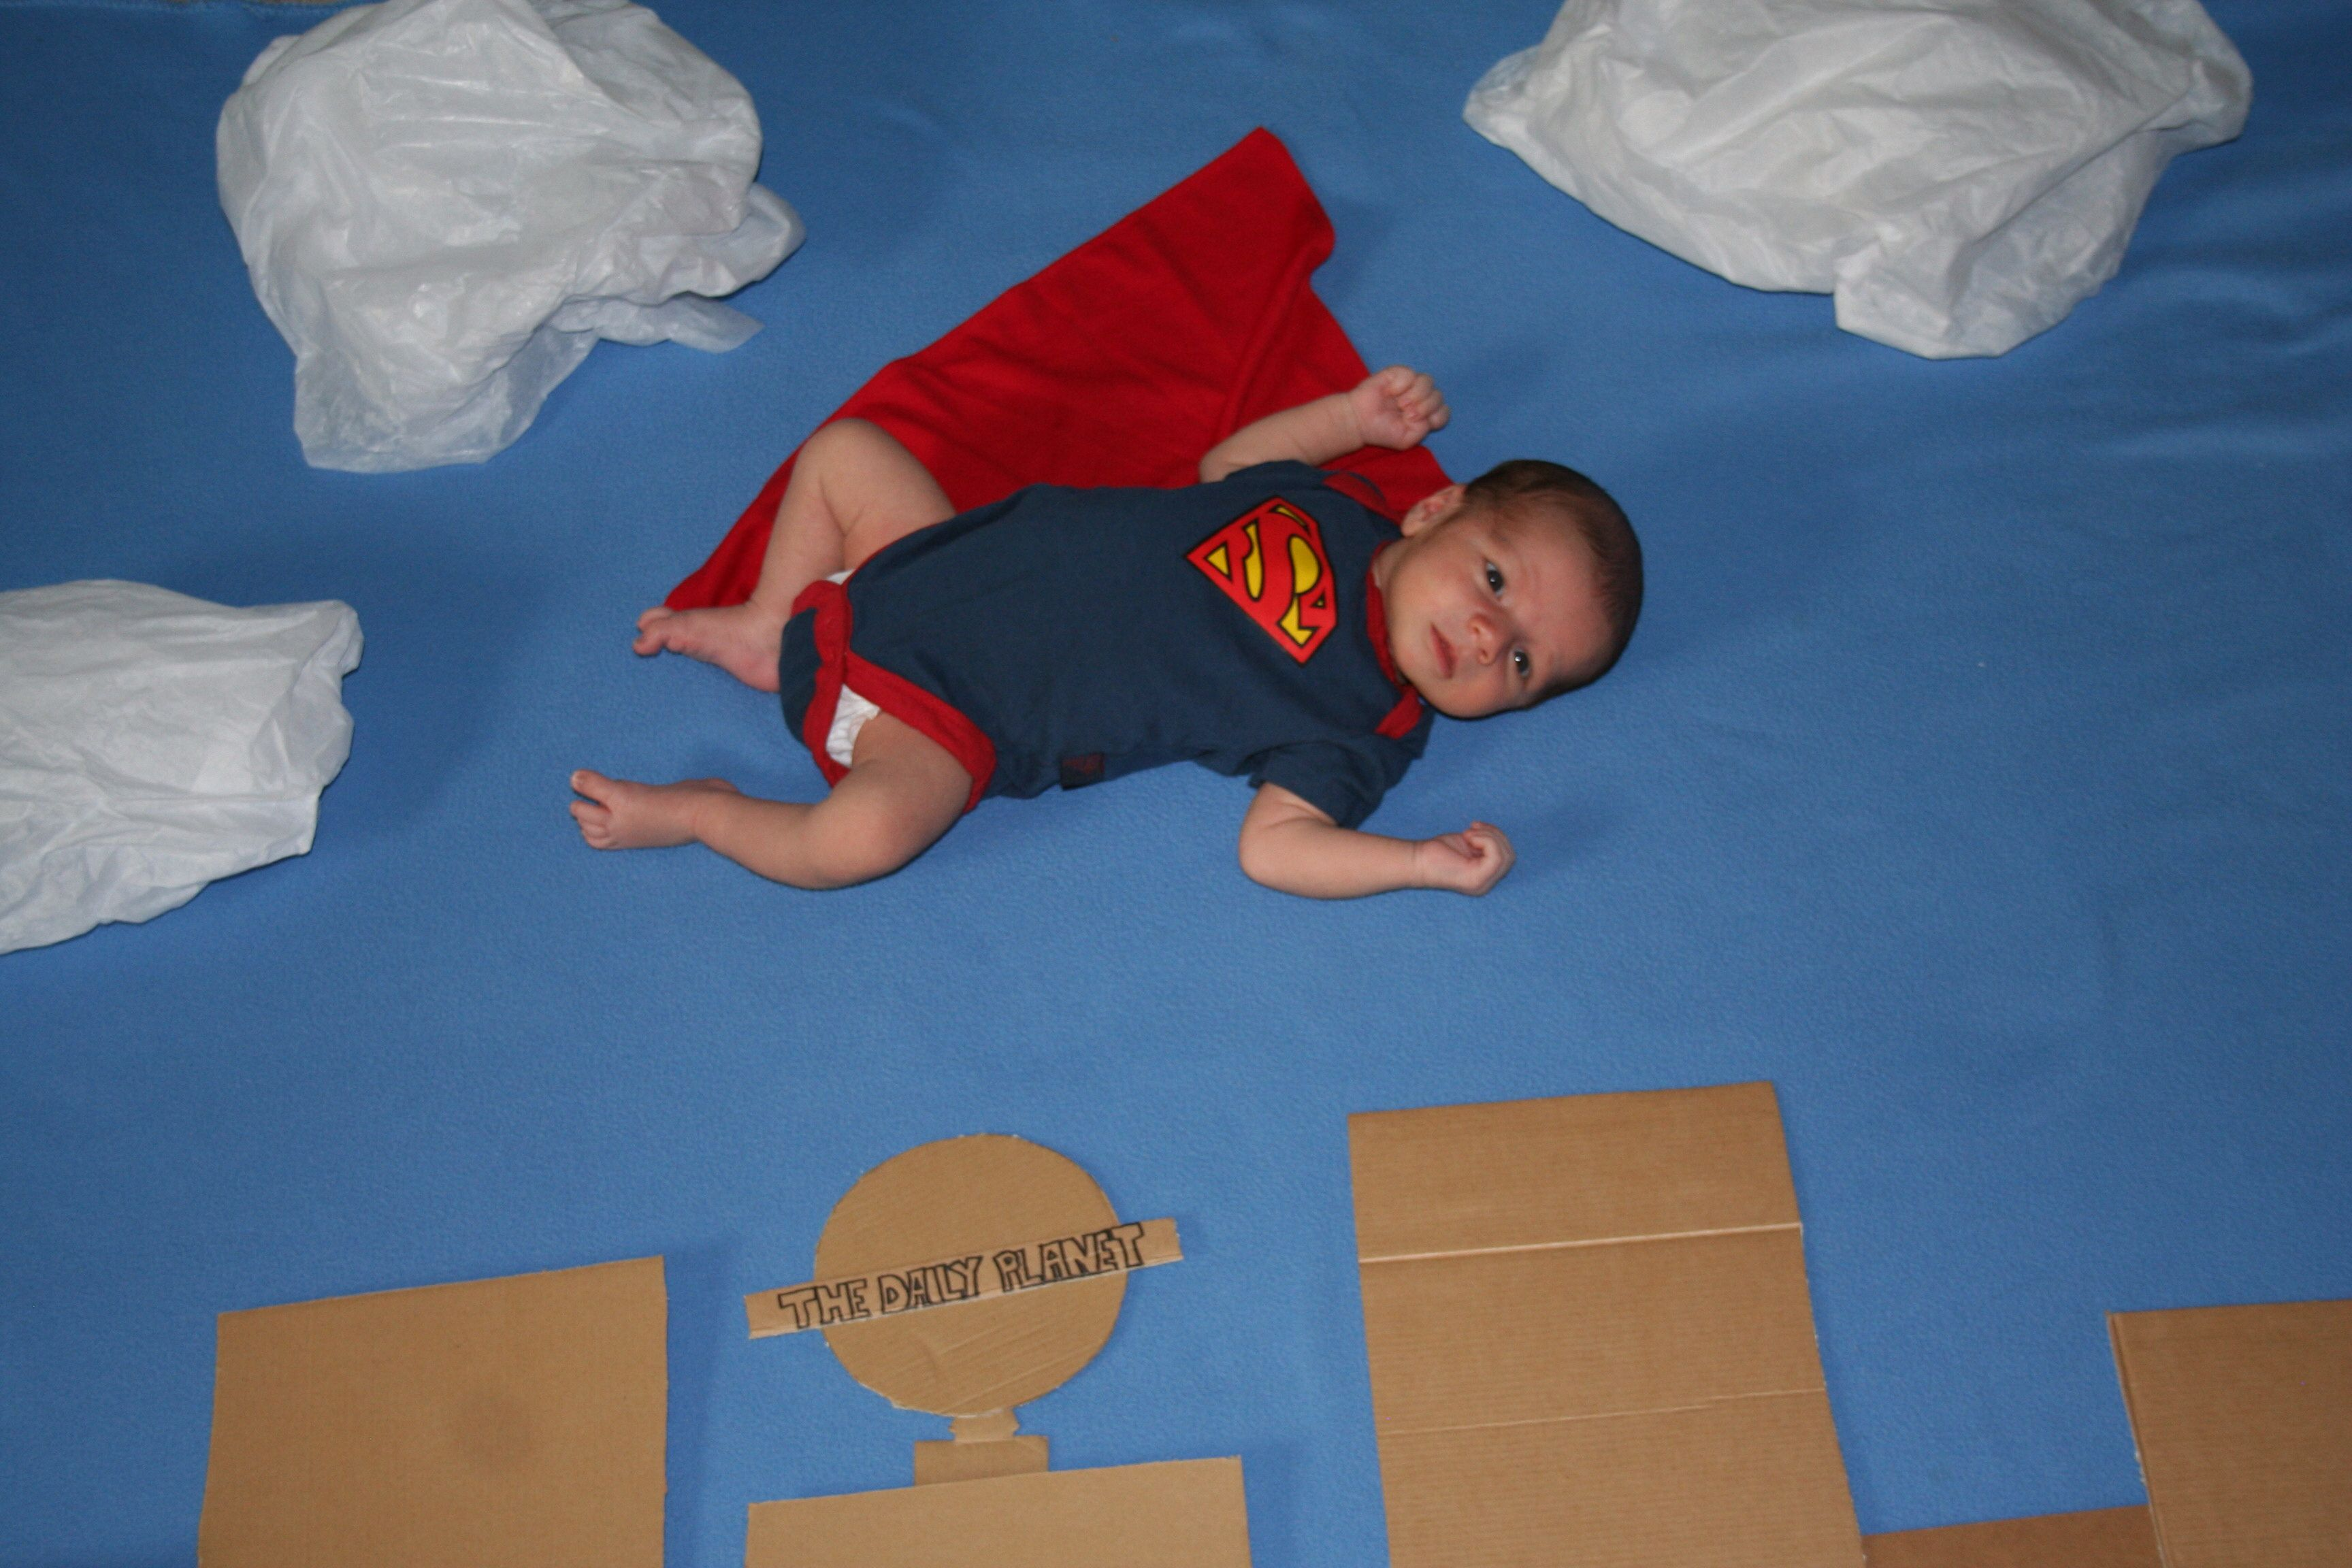 superman baby photoshoot photography ideas pinterest. Black Bedroom Furniture Sets. Home Design Ideas